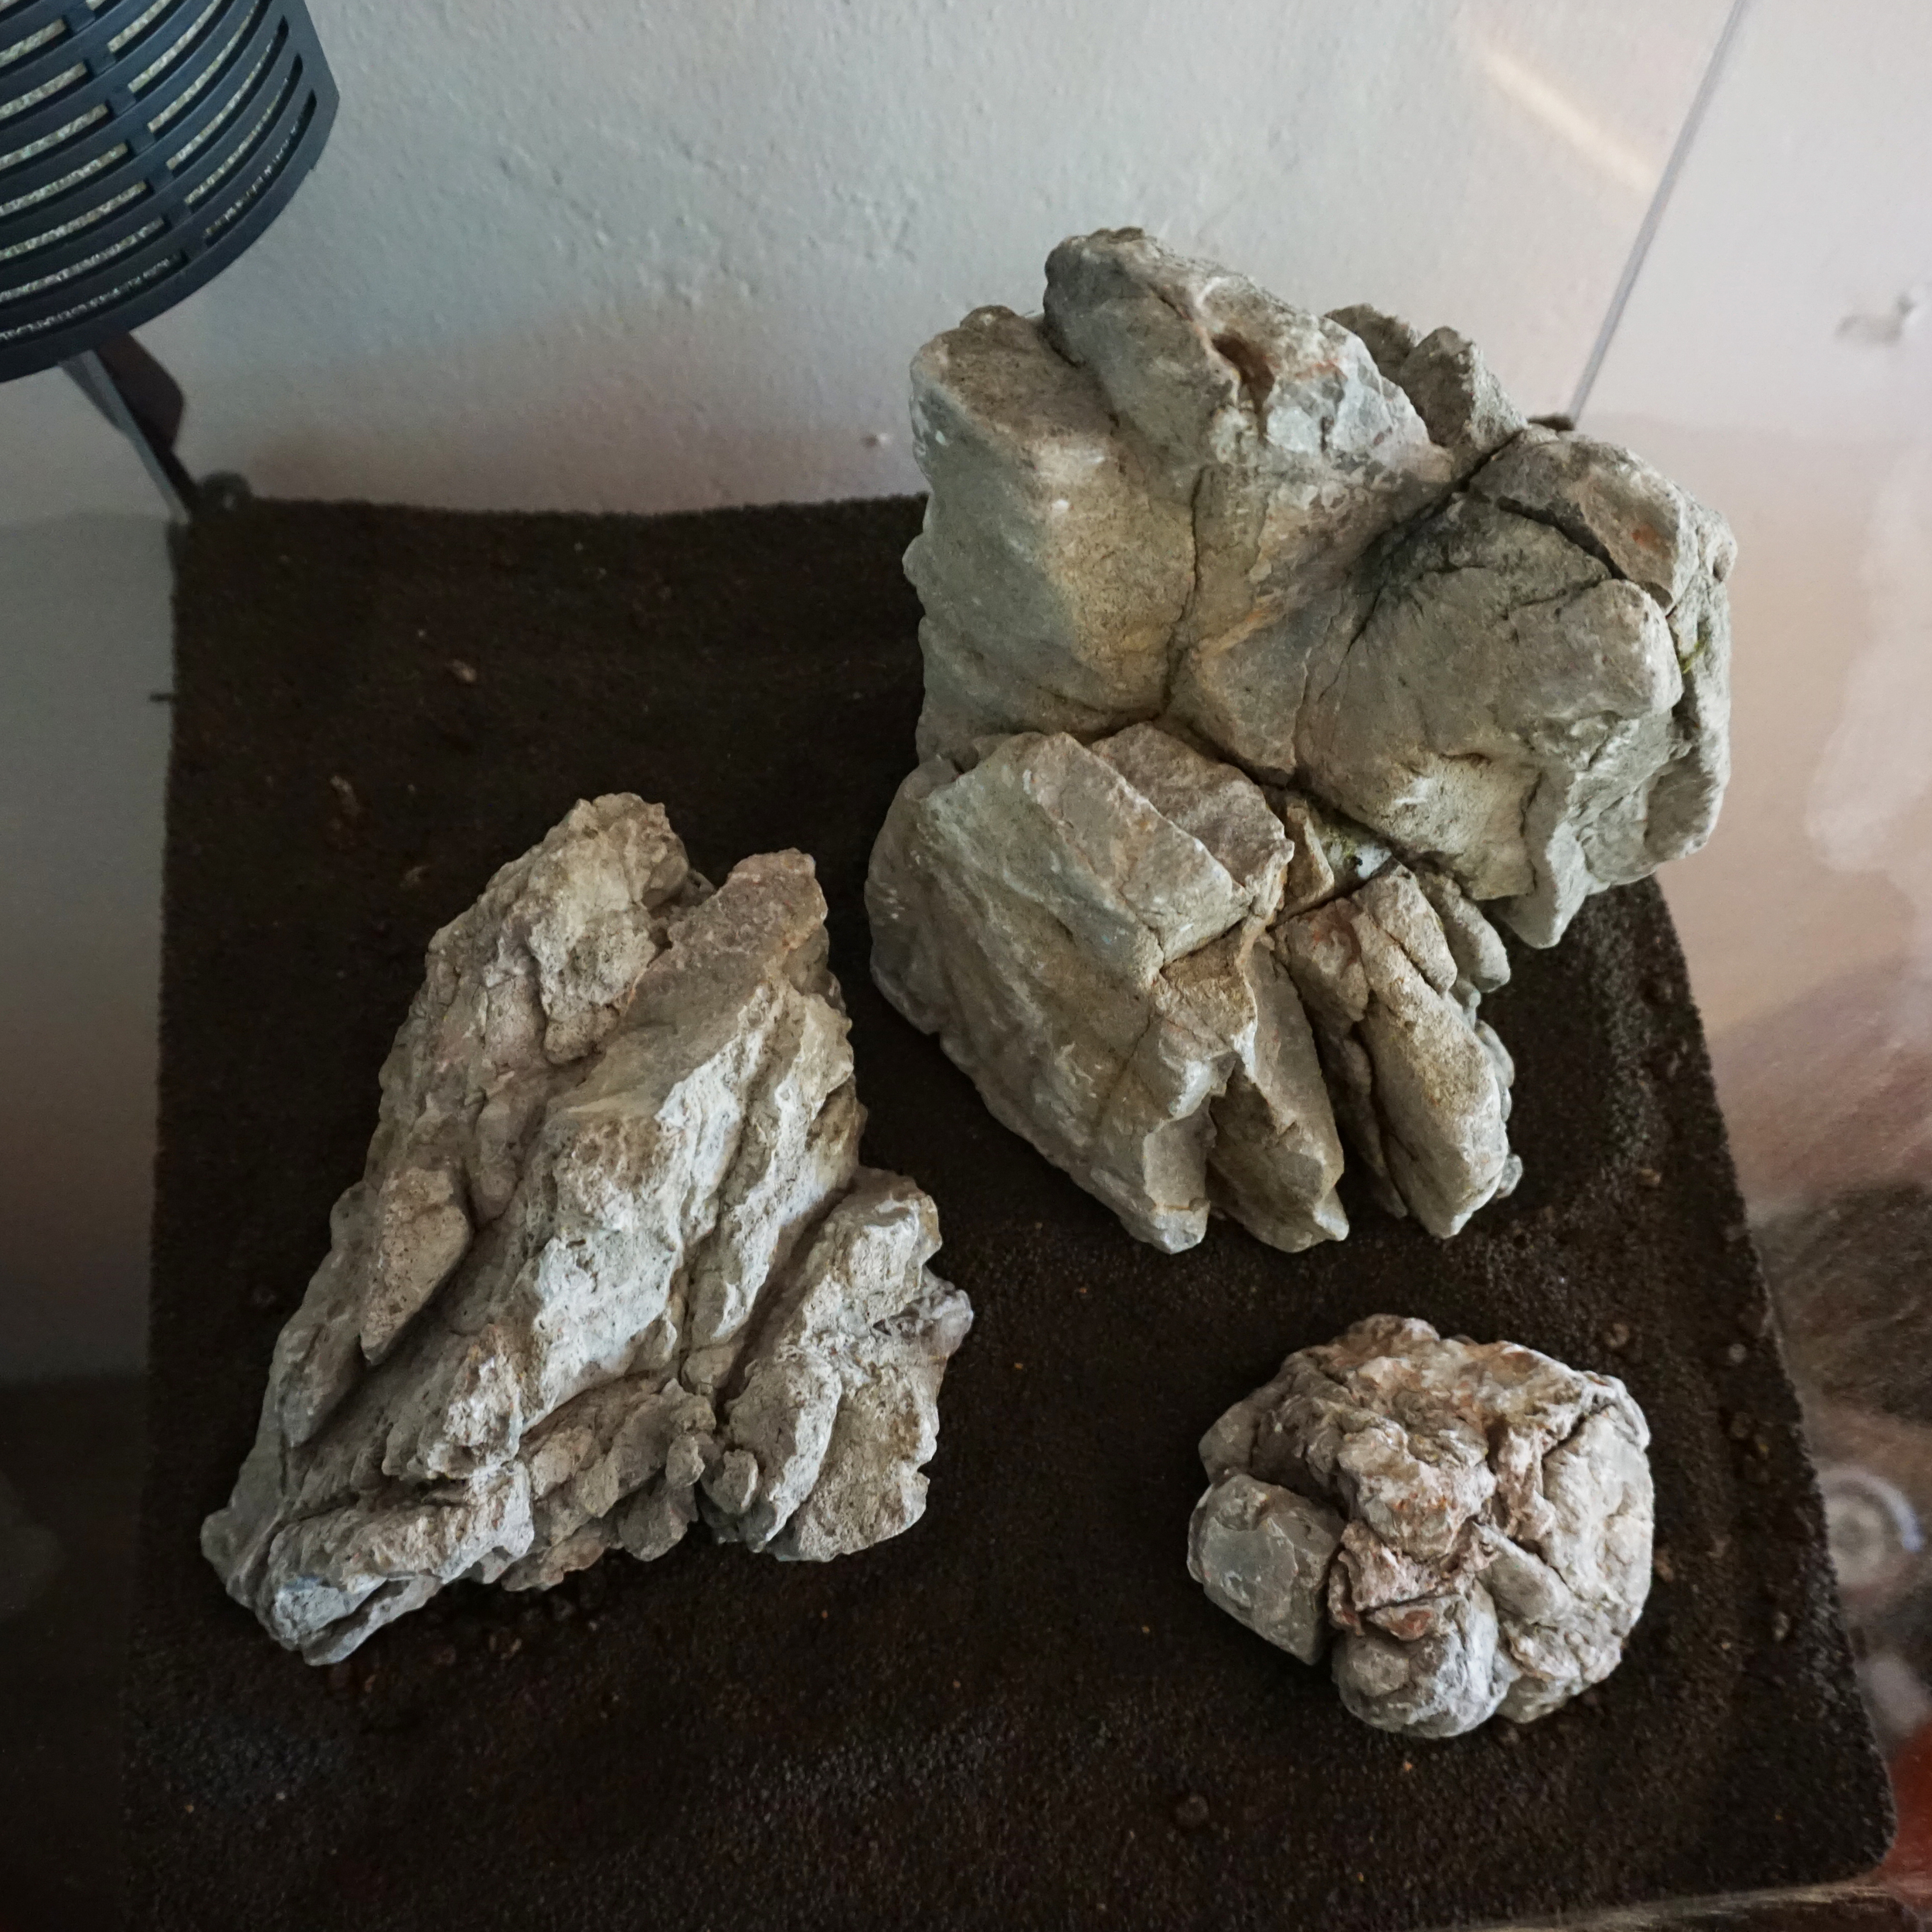 """Once your design is finalized, you can now take more substrate and add it to the tank. You may want to bring the substrate up higher in one area over another or partially bury asection of rock or wood. In other words, create a three dimensional space. When you are done, you will want about 2.5"""" to 3"""" of coverage throughout. Some areas can have slightly more, and some less depending on the overall design. Do not rush through this part of the set-up. Taking the night to sleep on it will go a long way later when you wish you would have done things differently. It is much easier to make slight changes without water in your aquarium."""